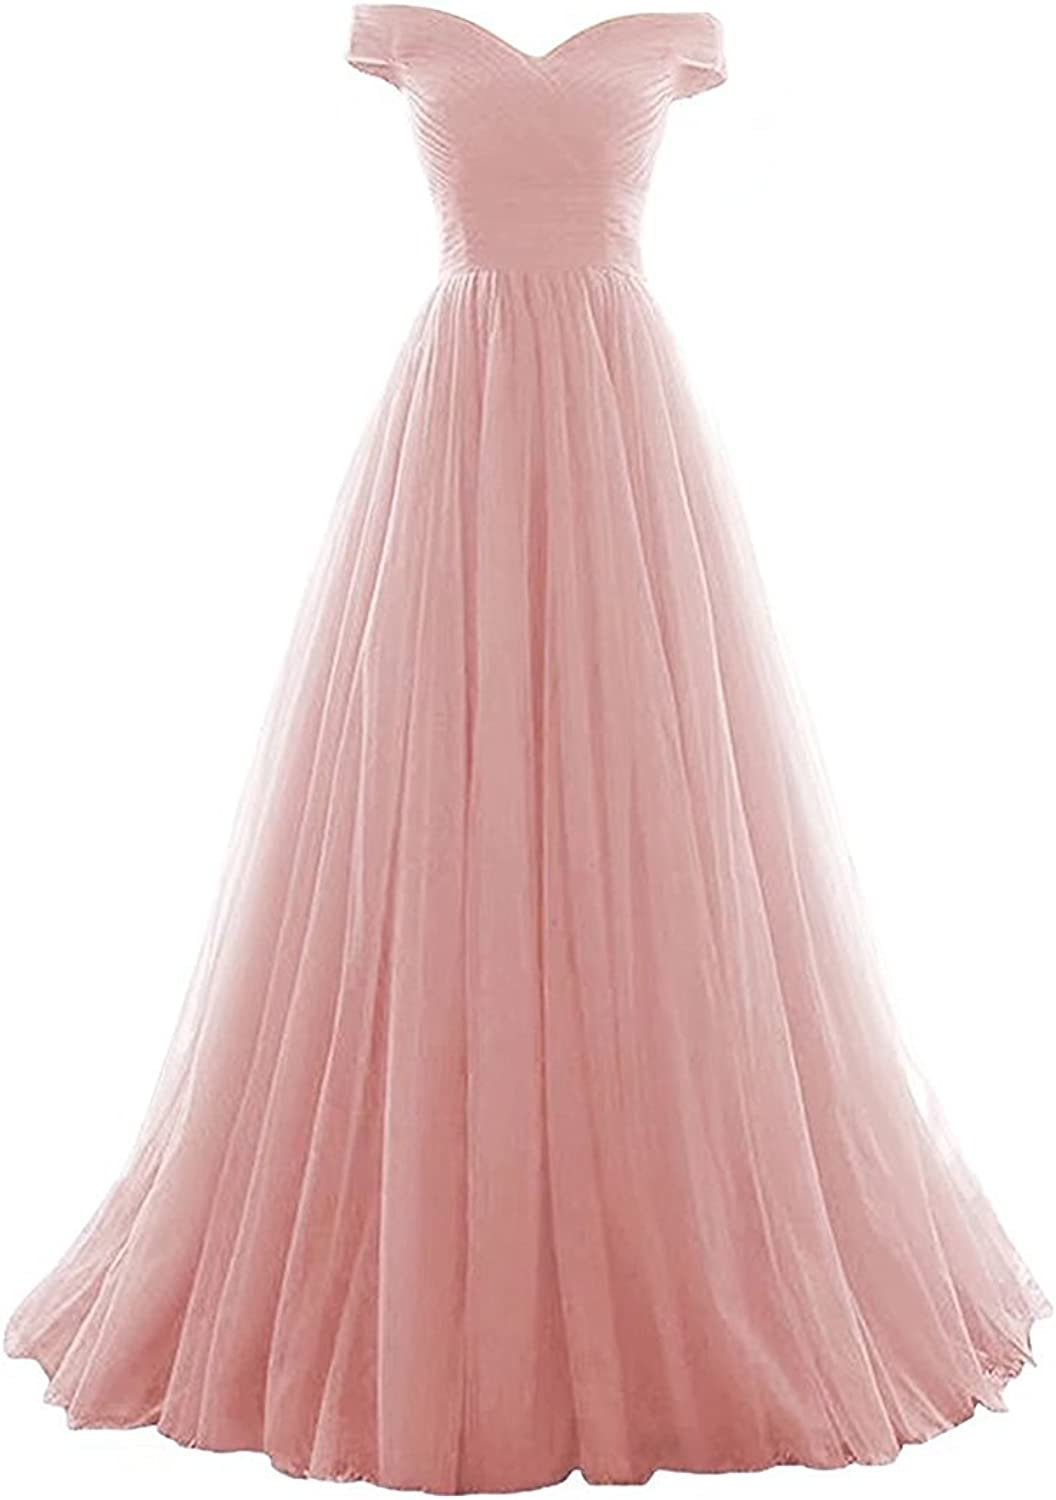 Awishwill Women's Off Shoulder Cap Sleeve Prom Dress Tulle V Neck Evening Formal Gown